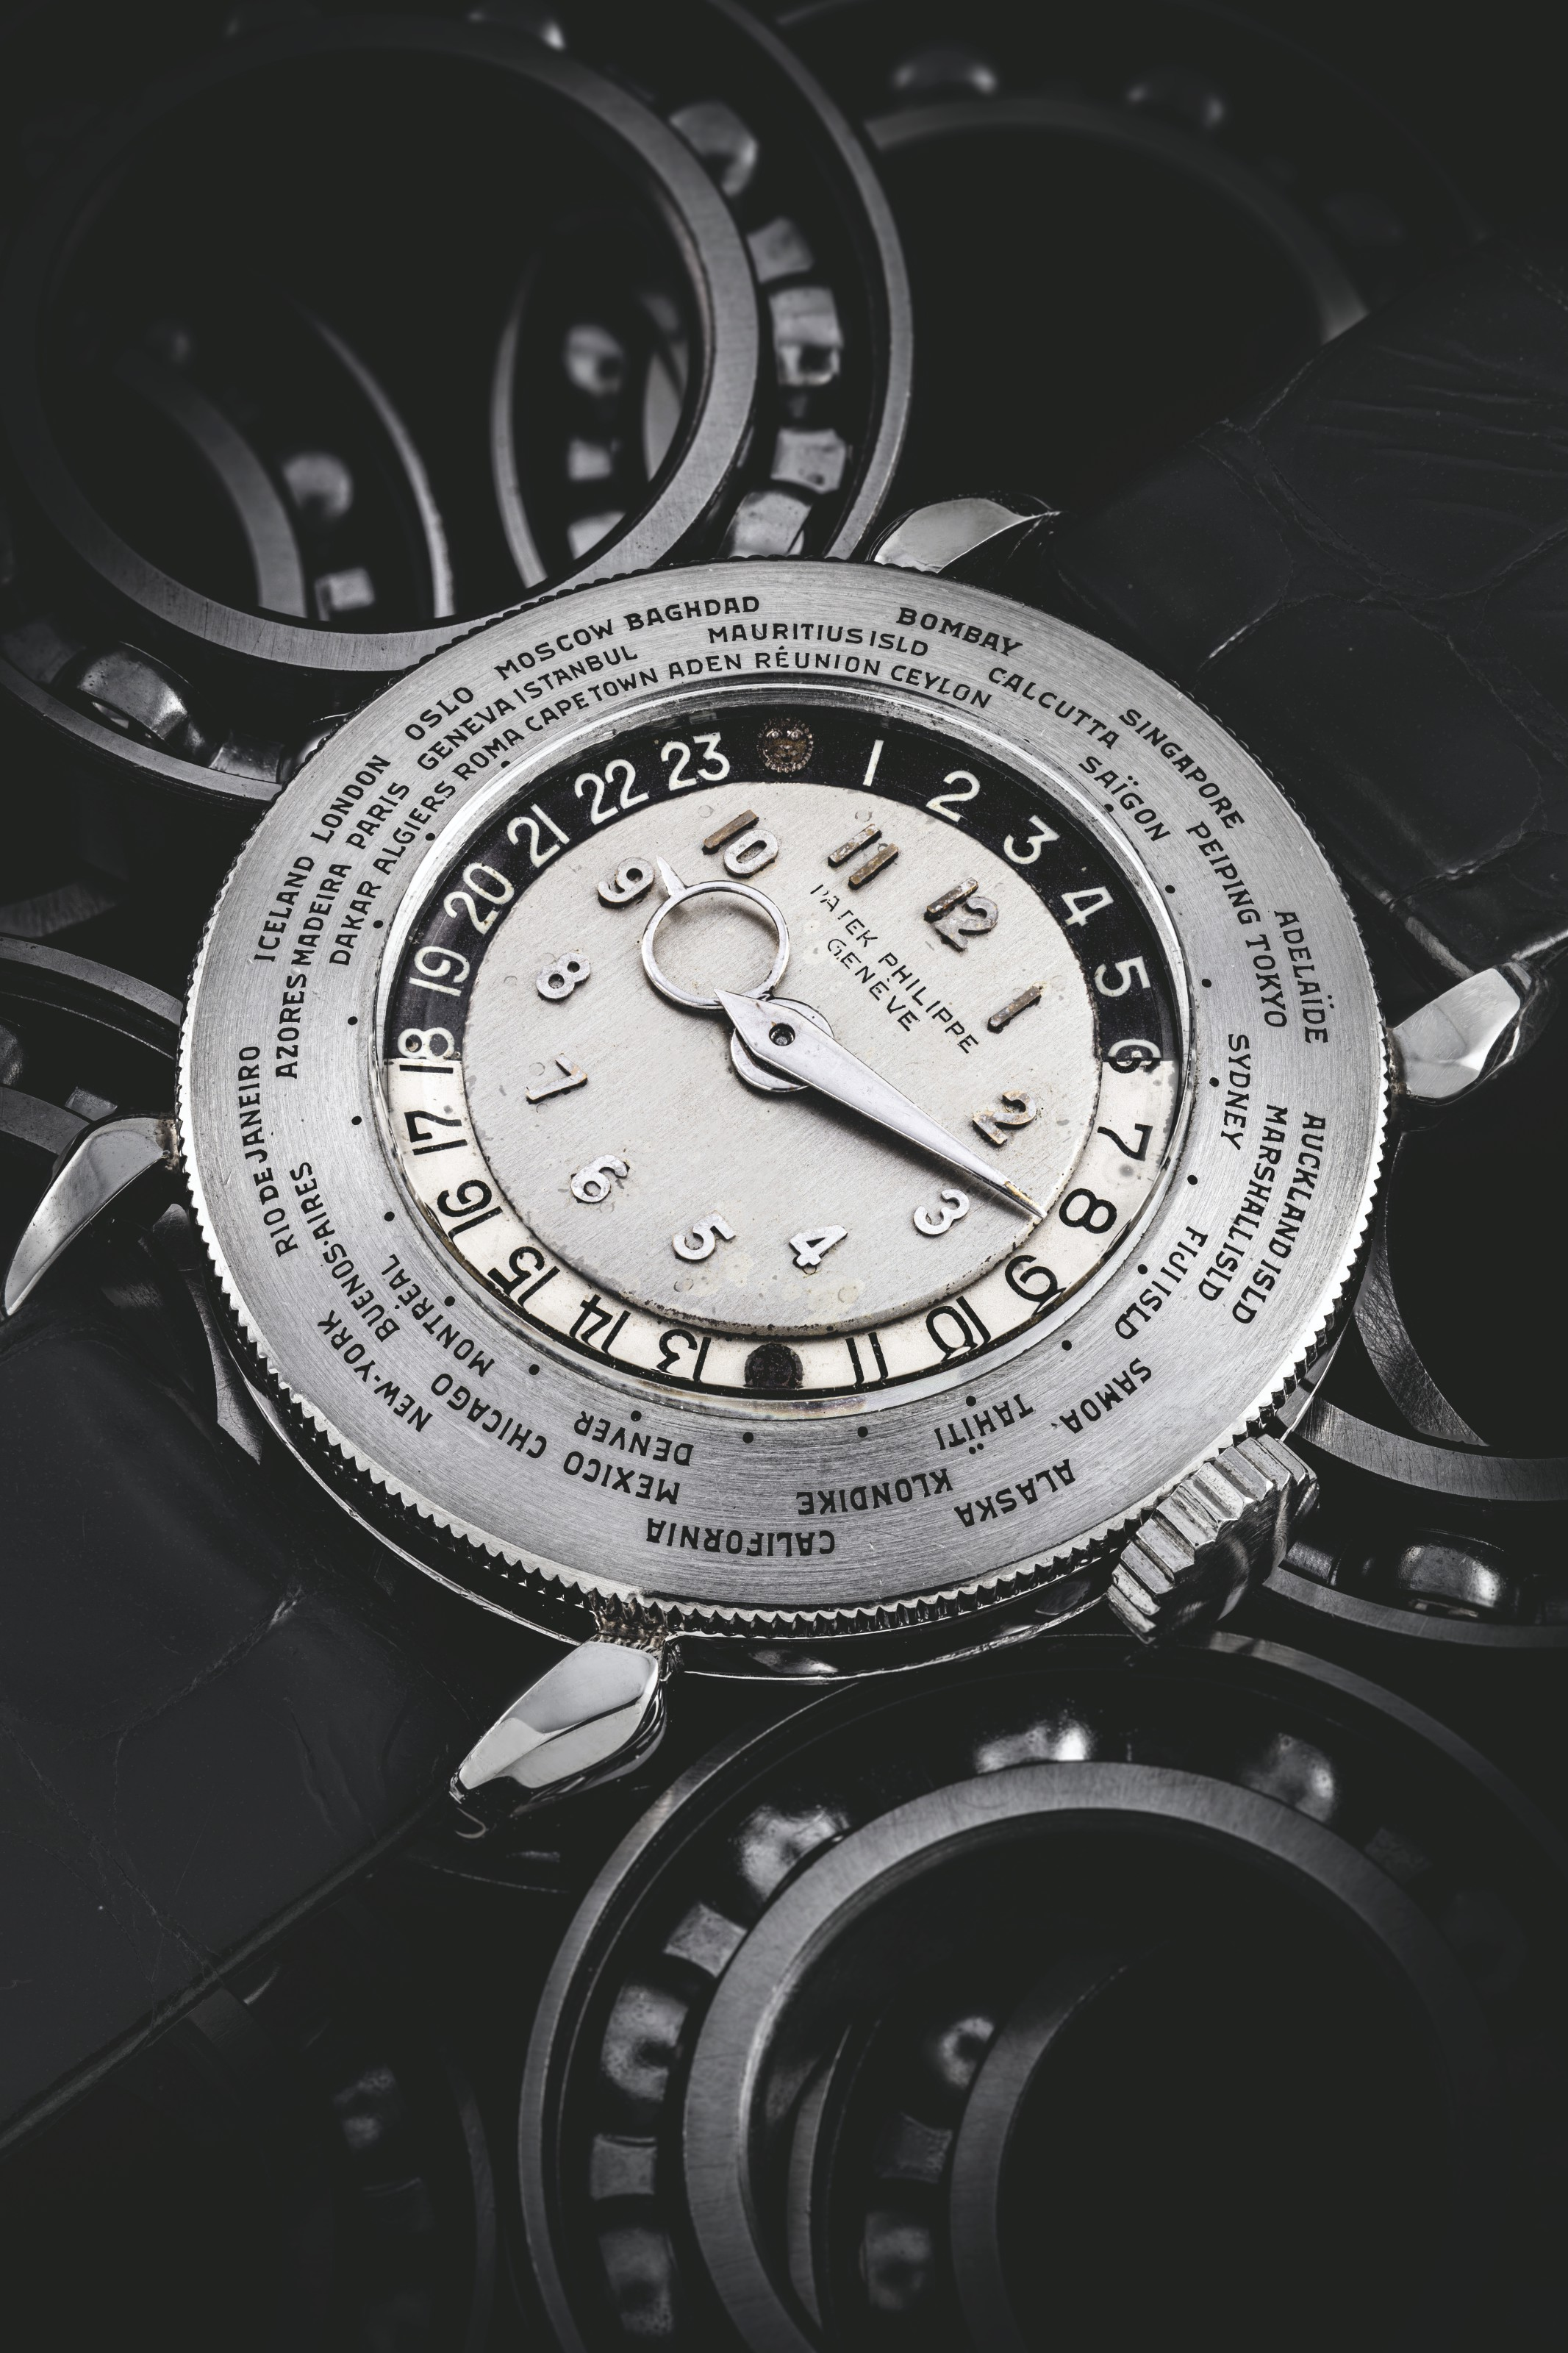 PATEK PHILIIPPE. A UNIQUE AND VERY IMPORTANT PLATINUM WORLD TIME WRISTWATCH